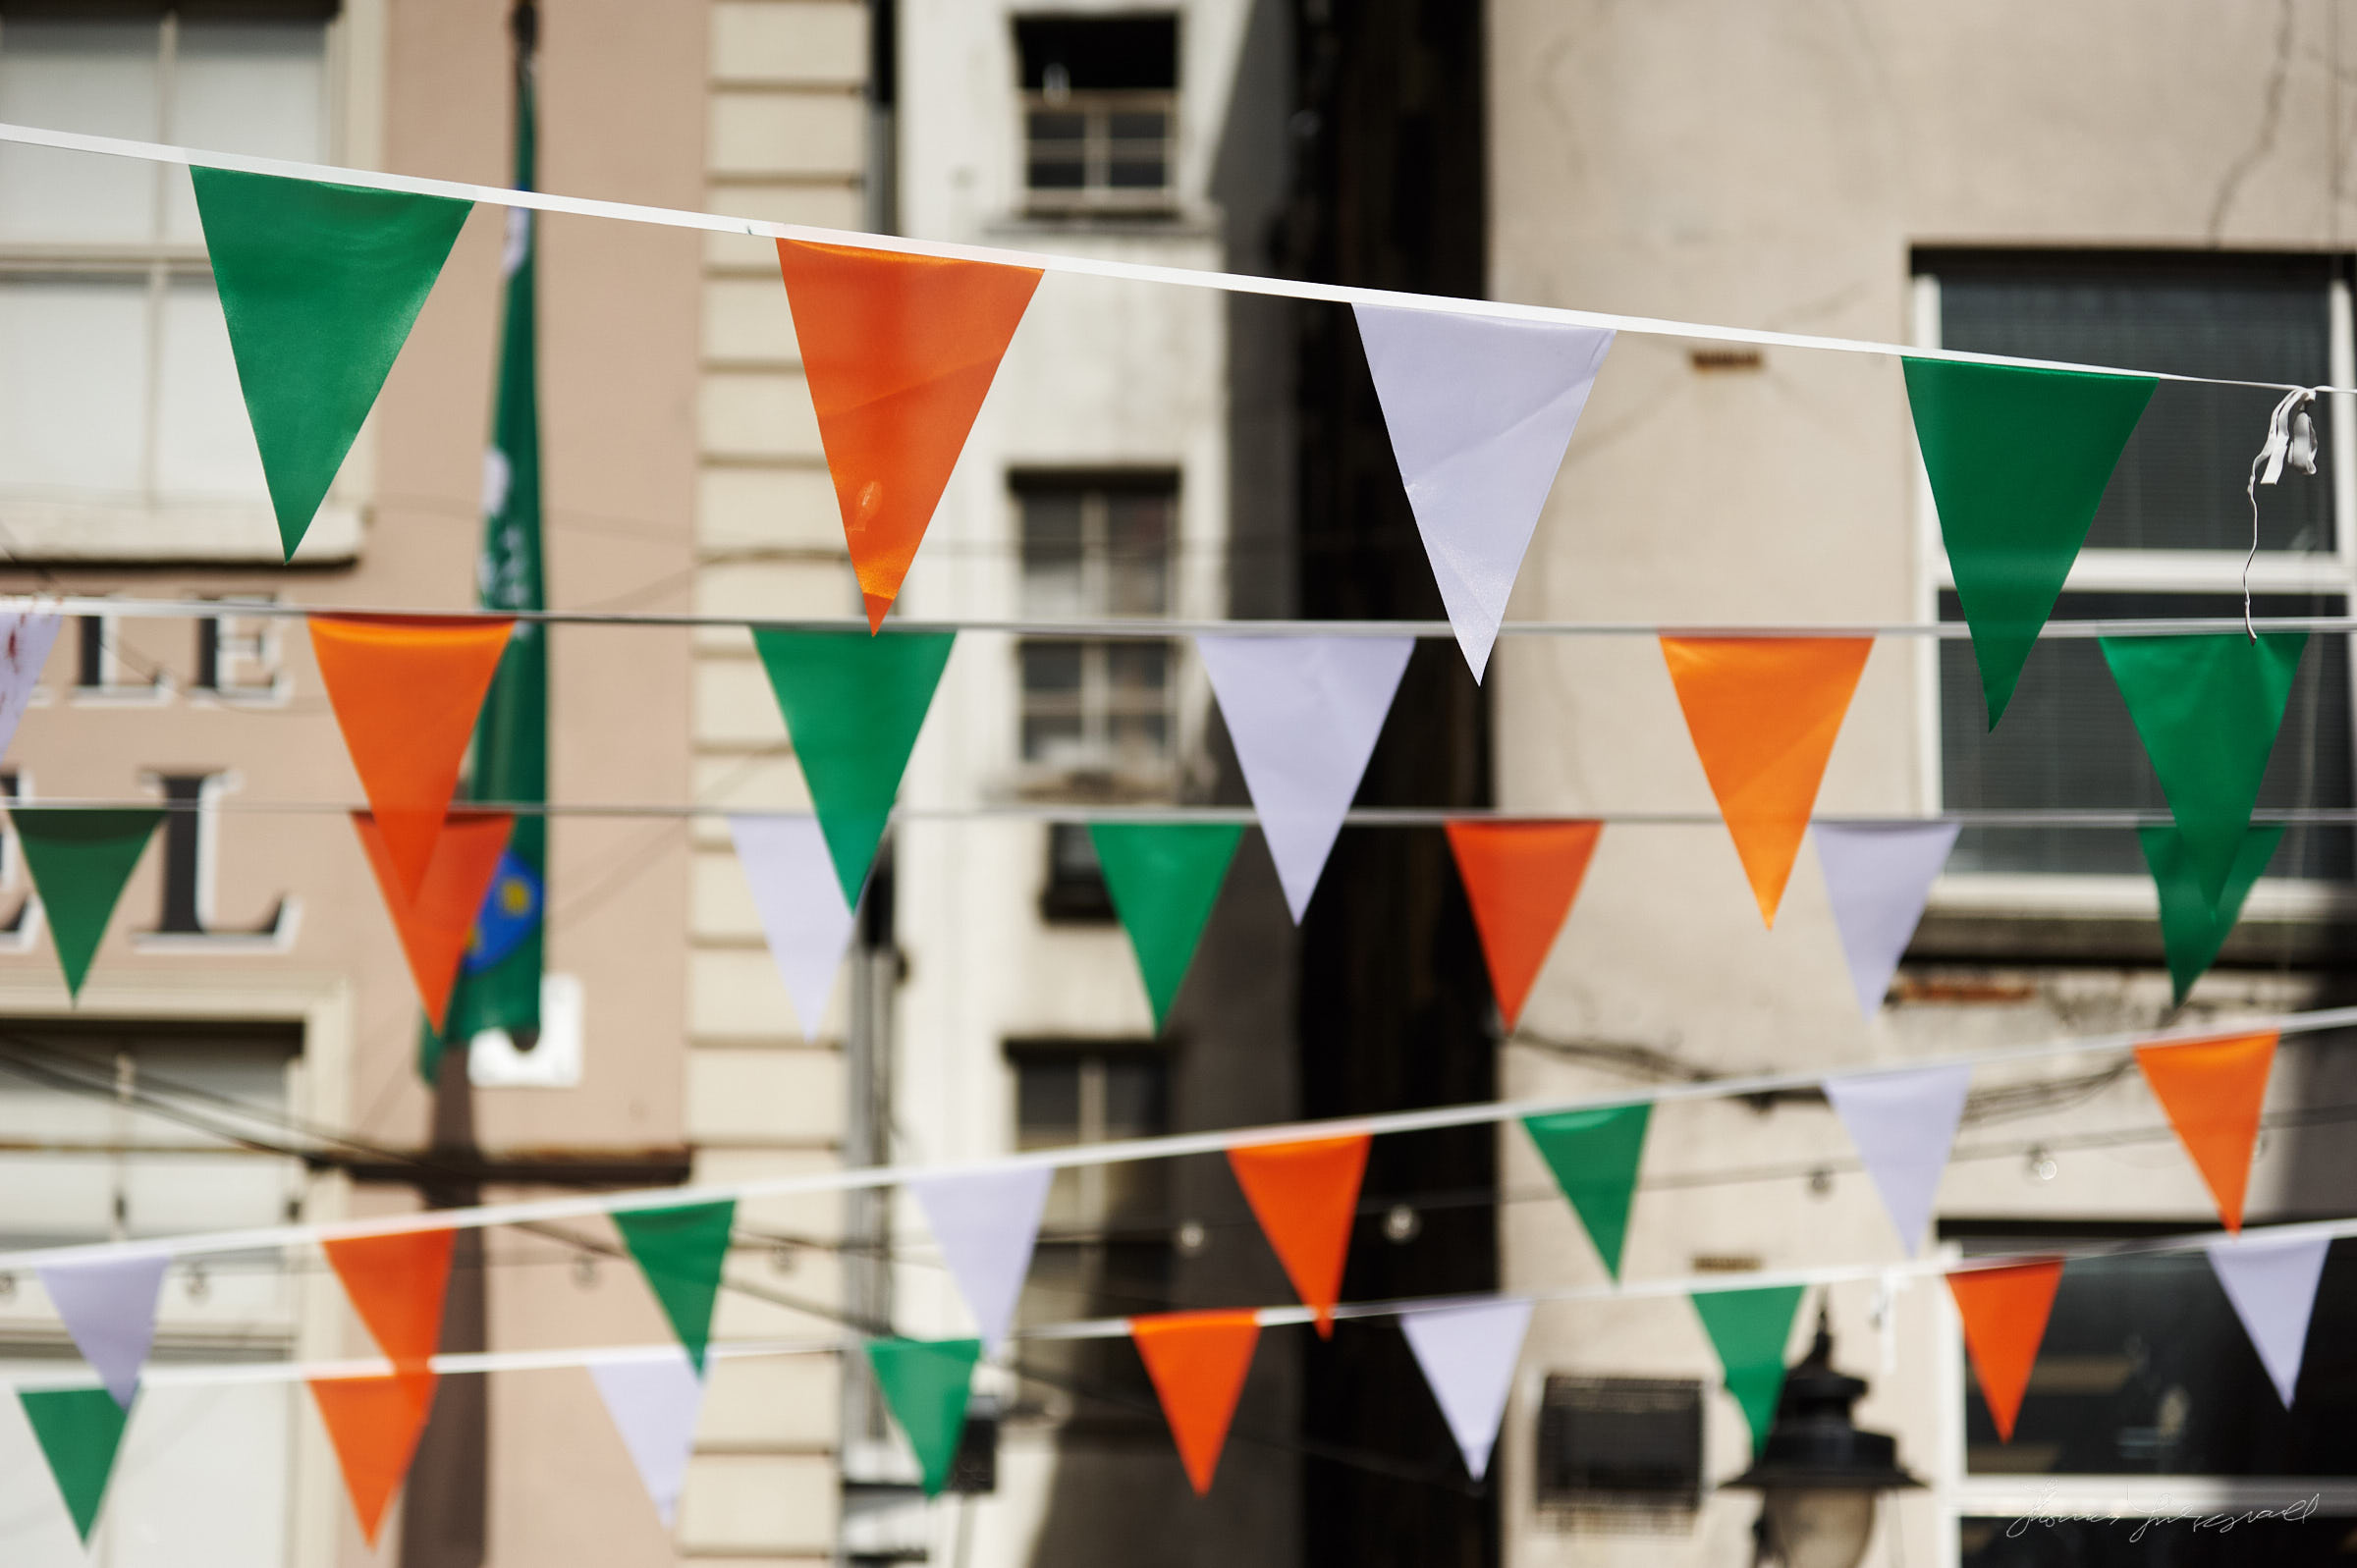 St. Patricks Day Decorations in Dublin